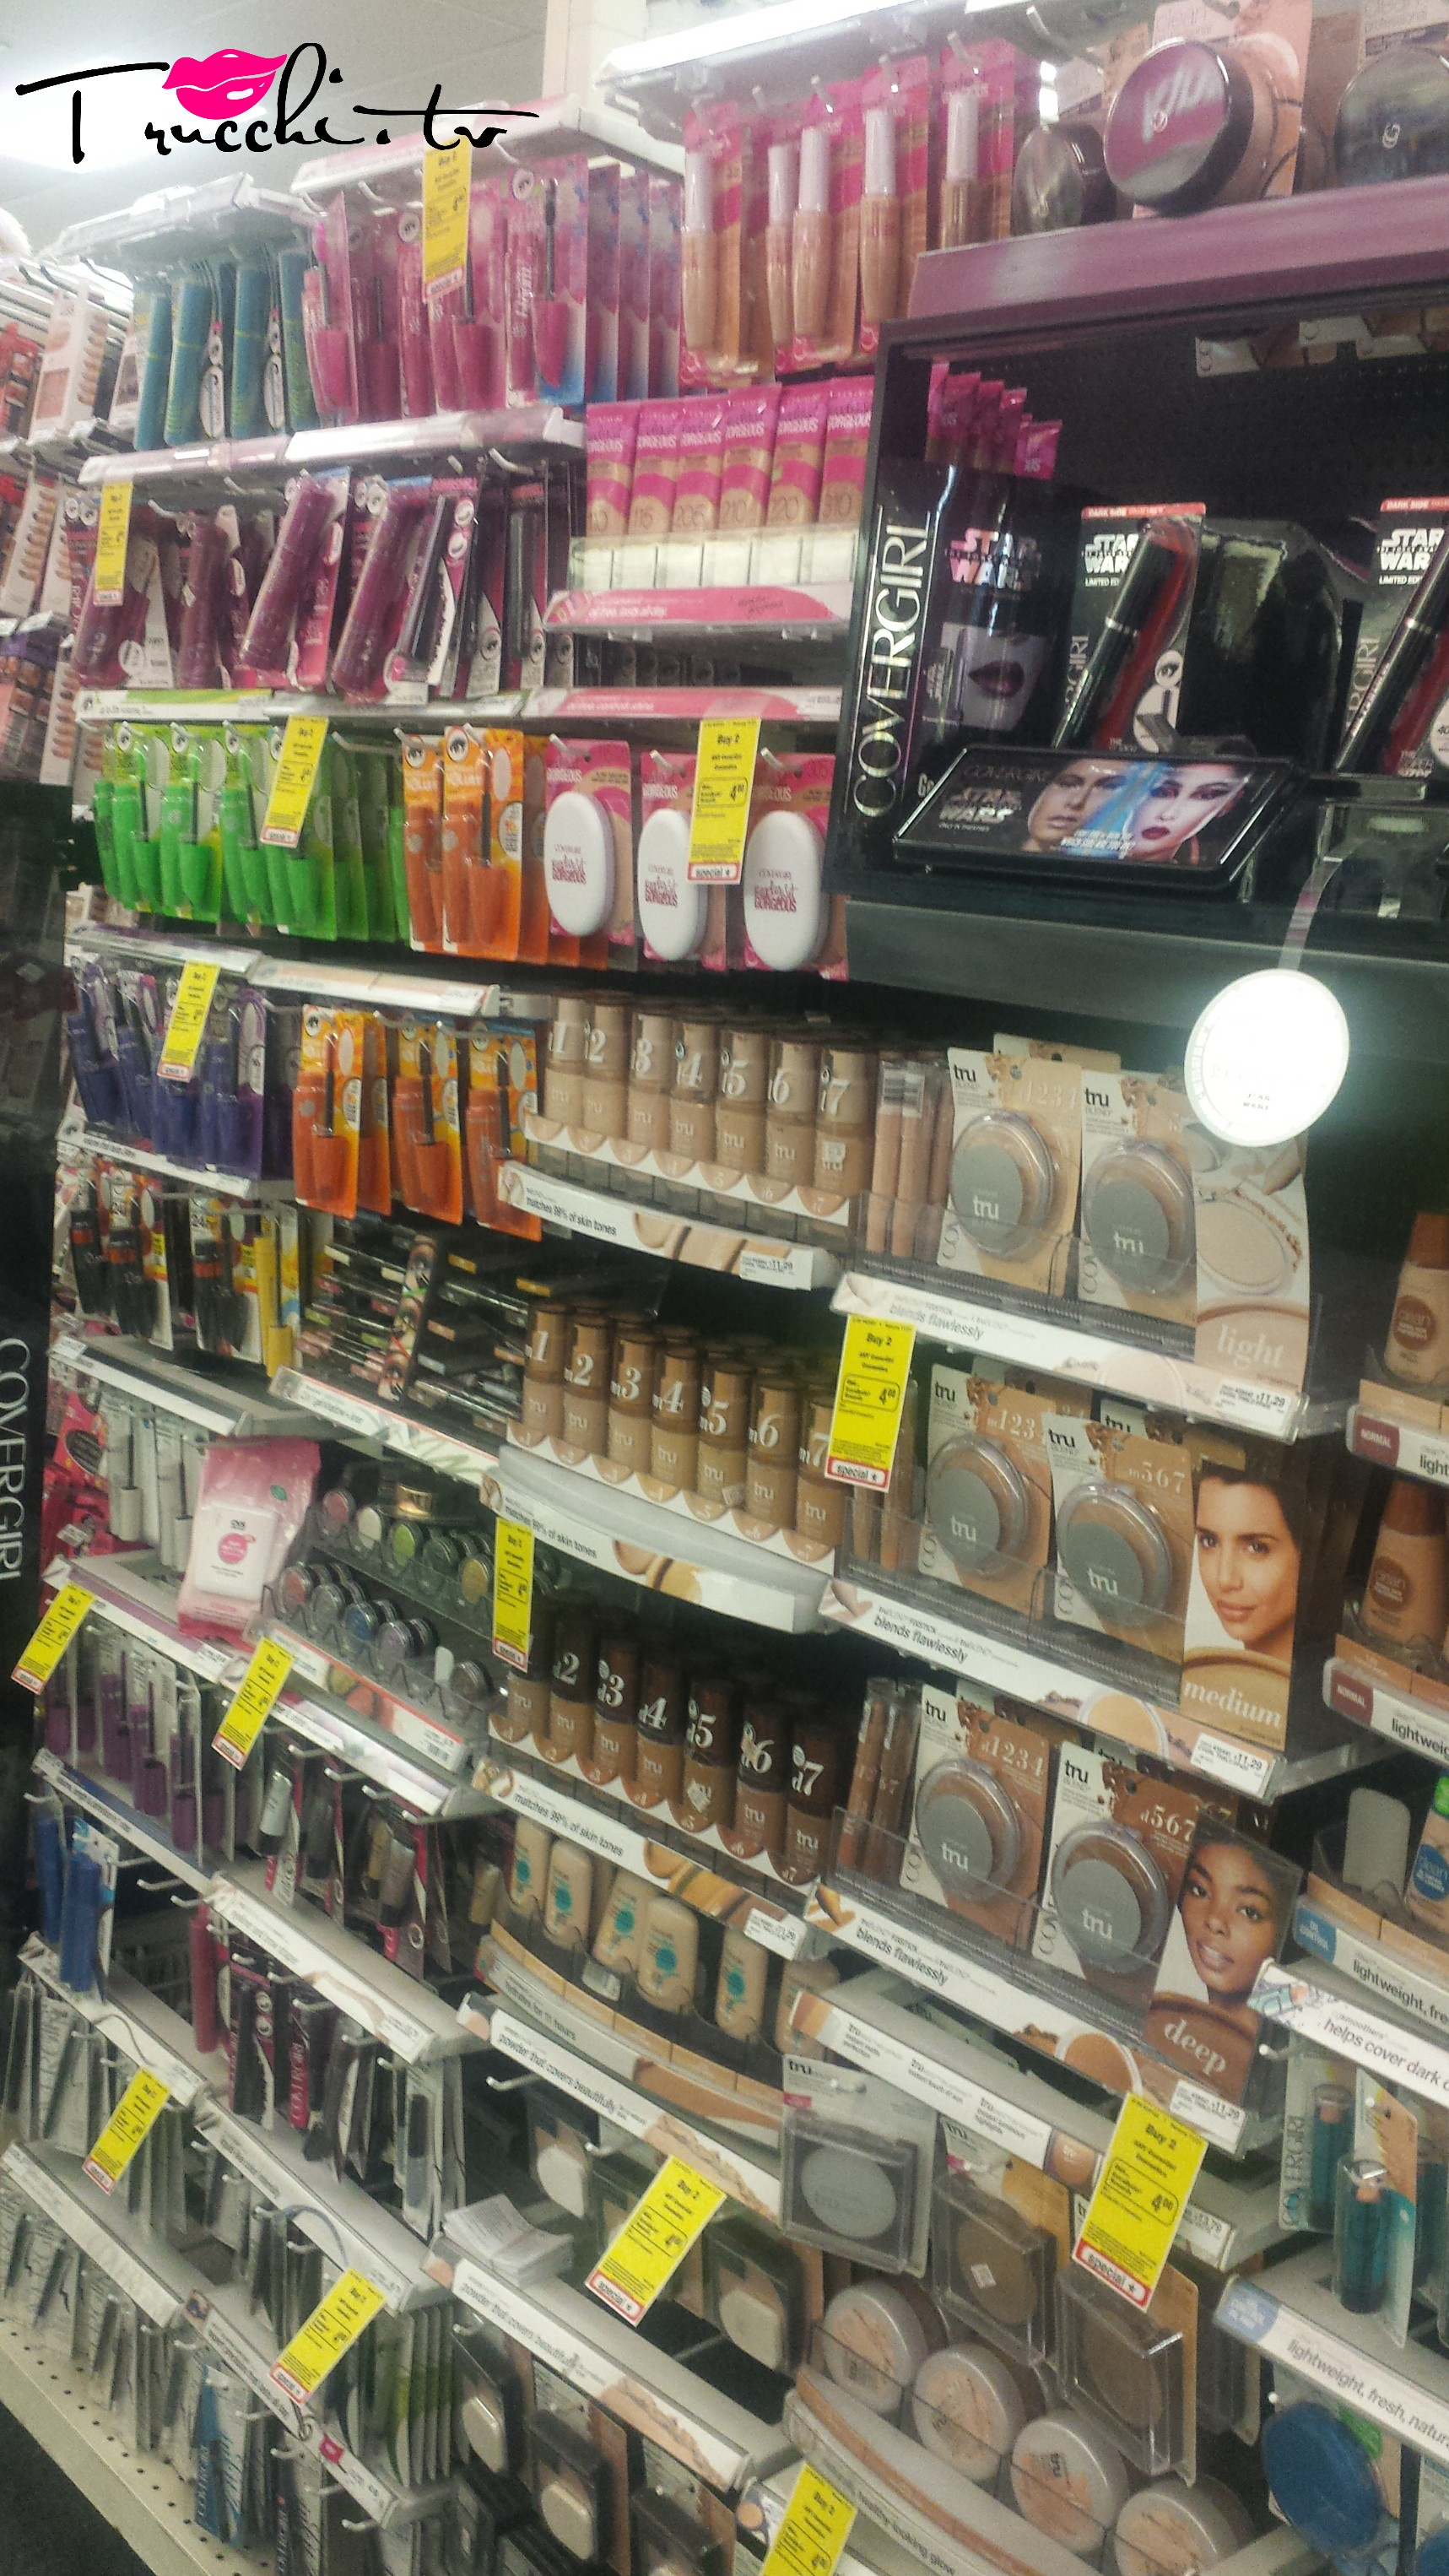 Shopping Makeup New York - CVS Pharmacy CoverGirl